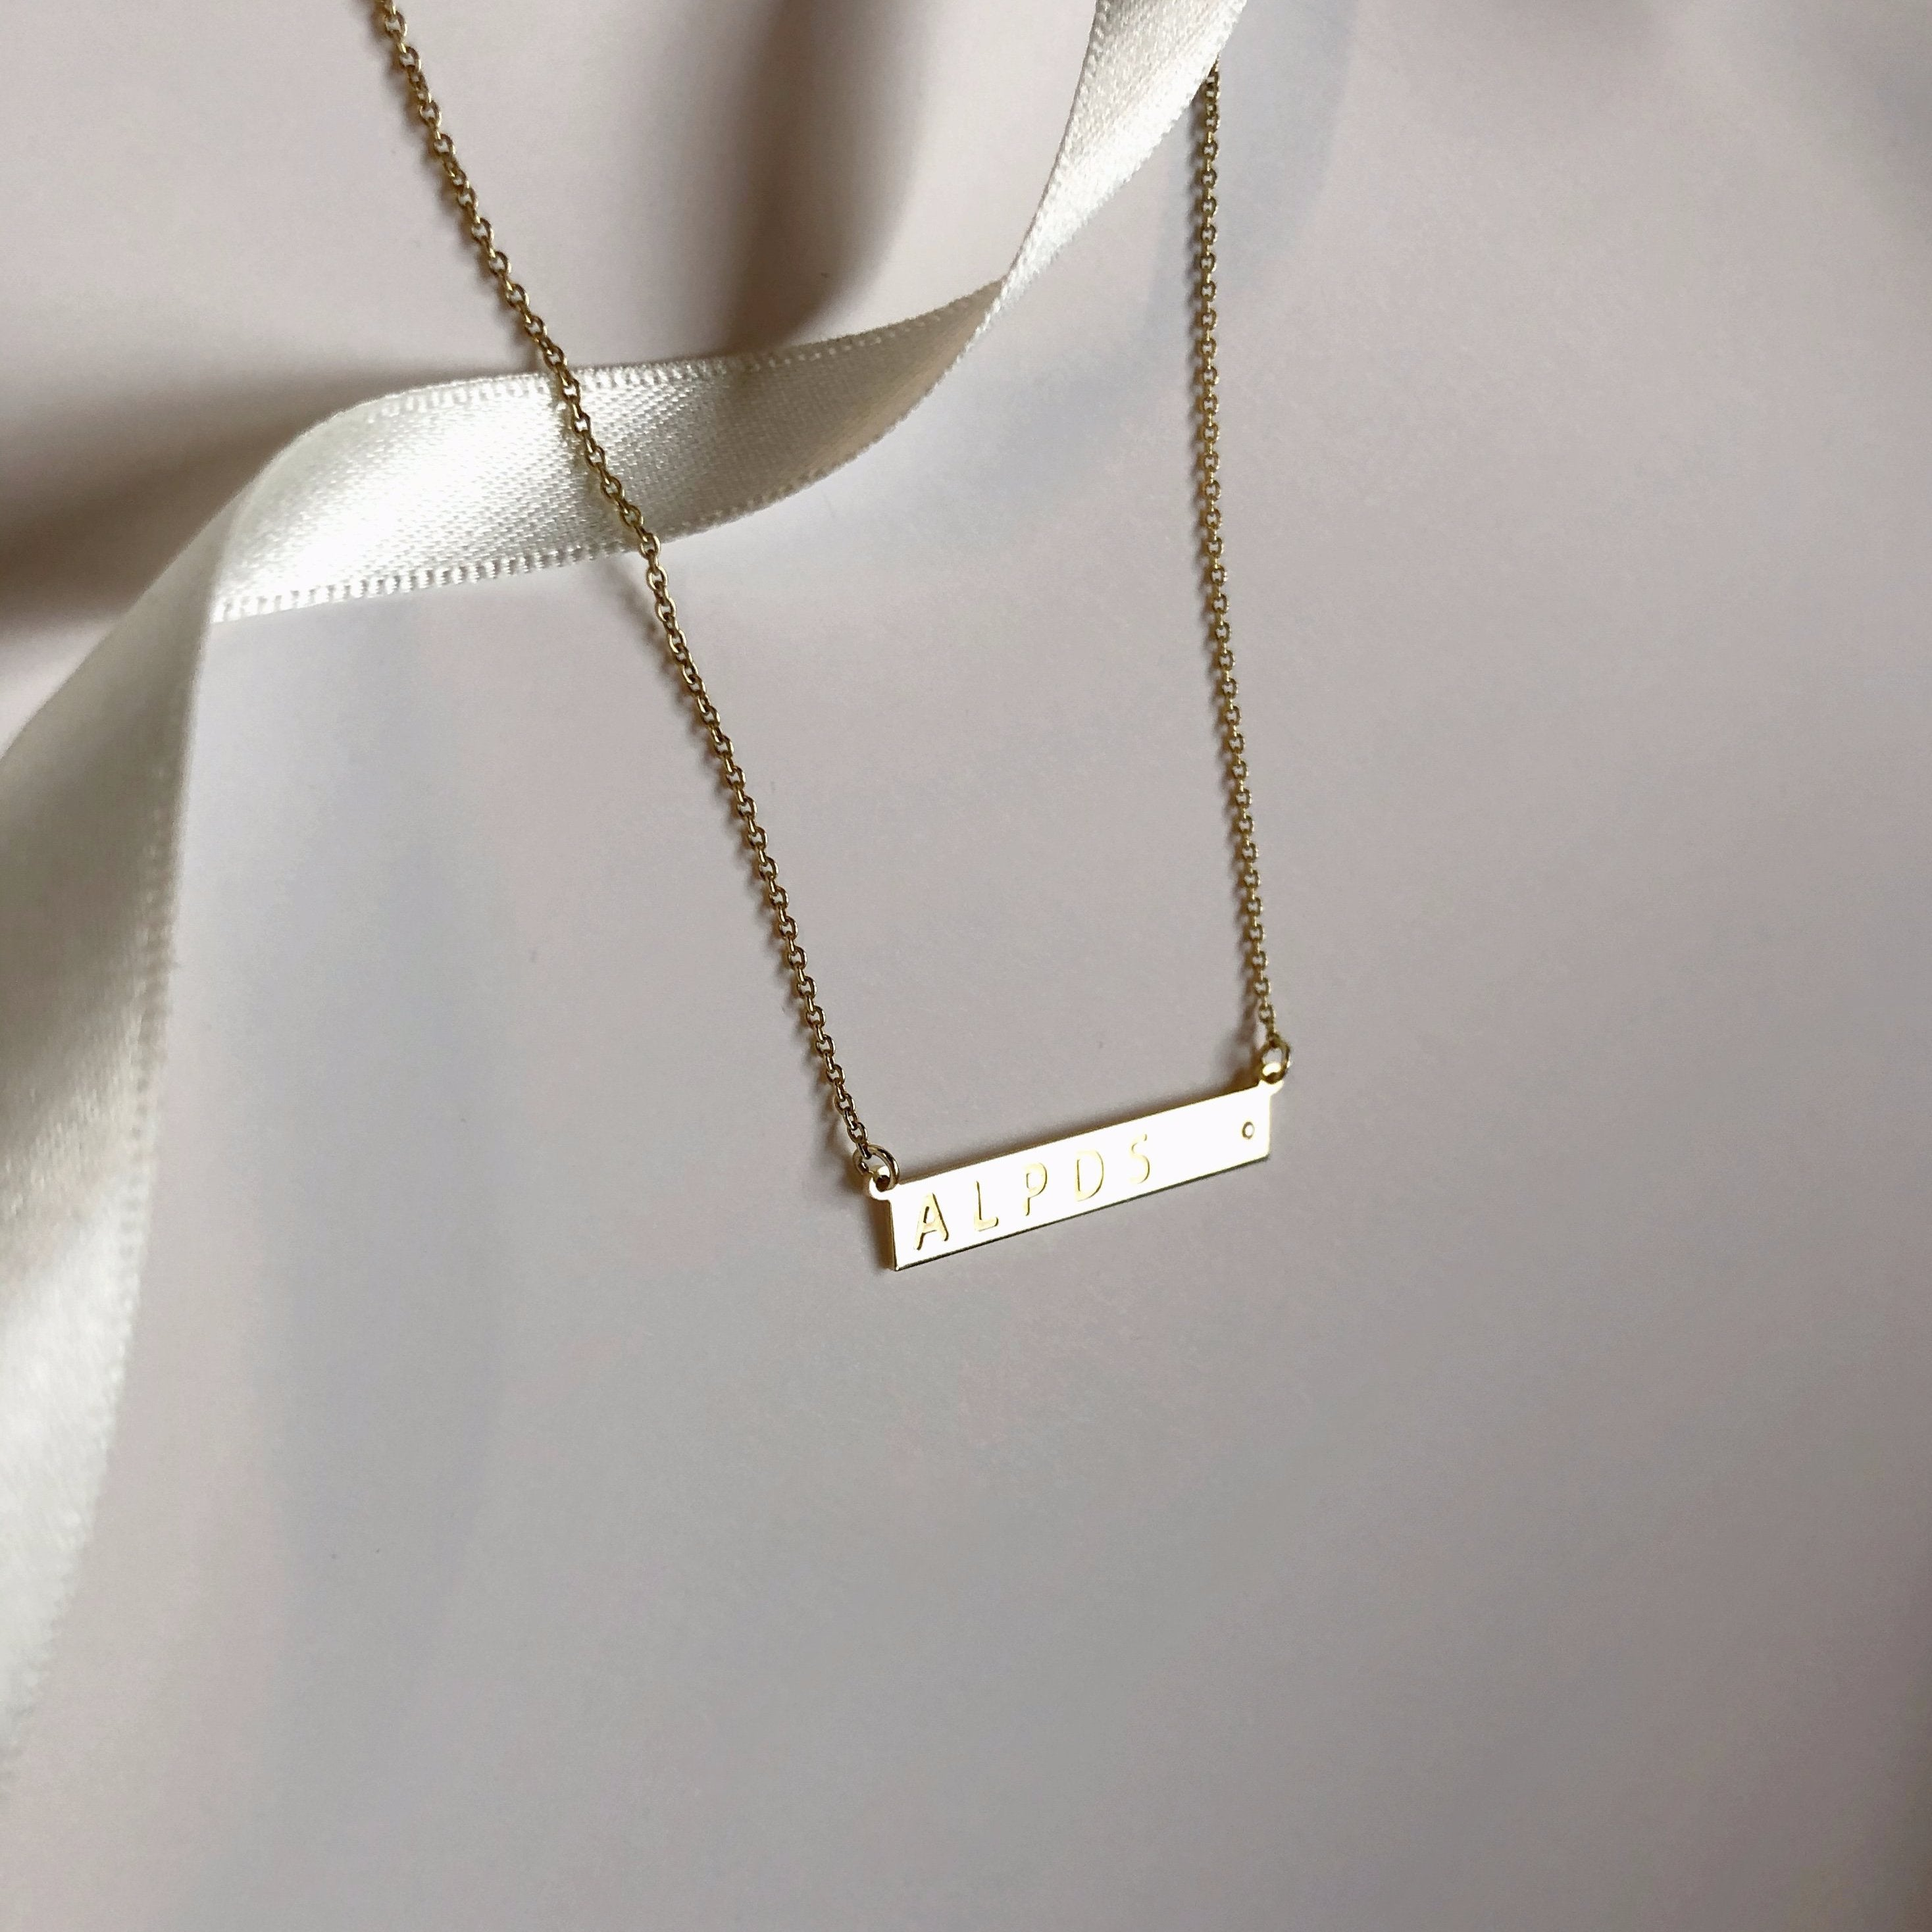 LE BAR necklace - BYVELA jewellery